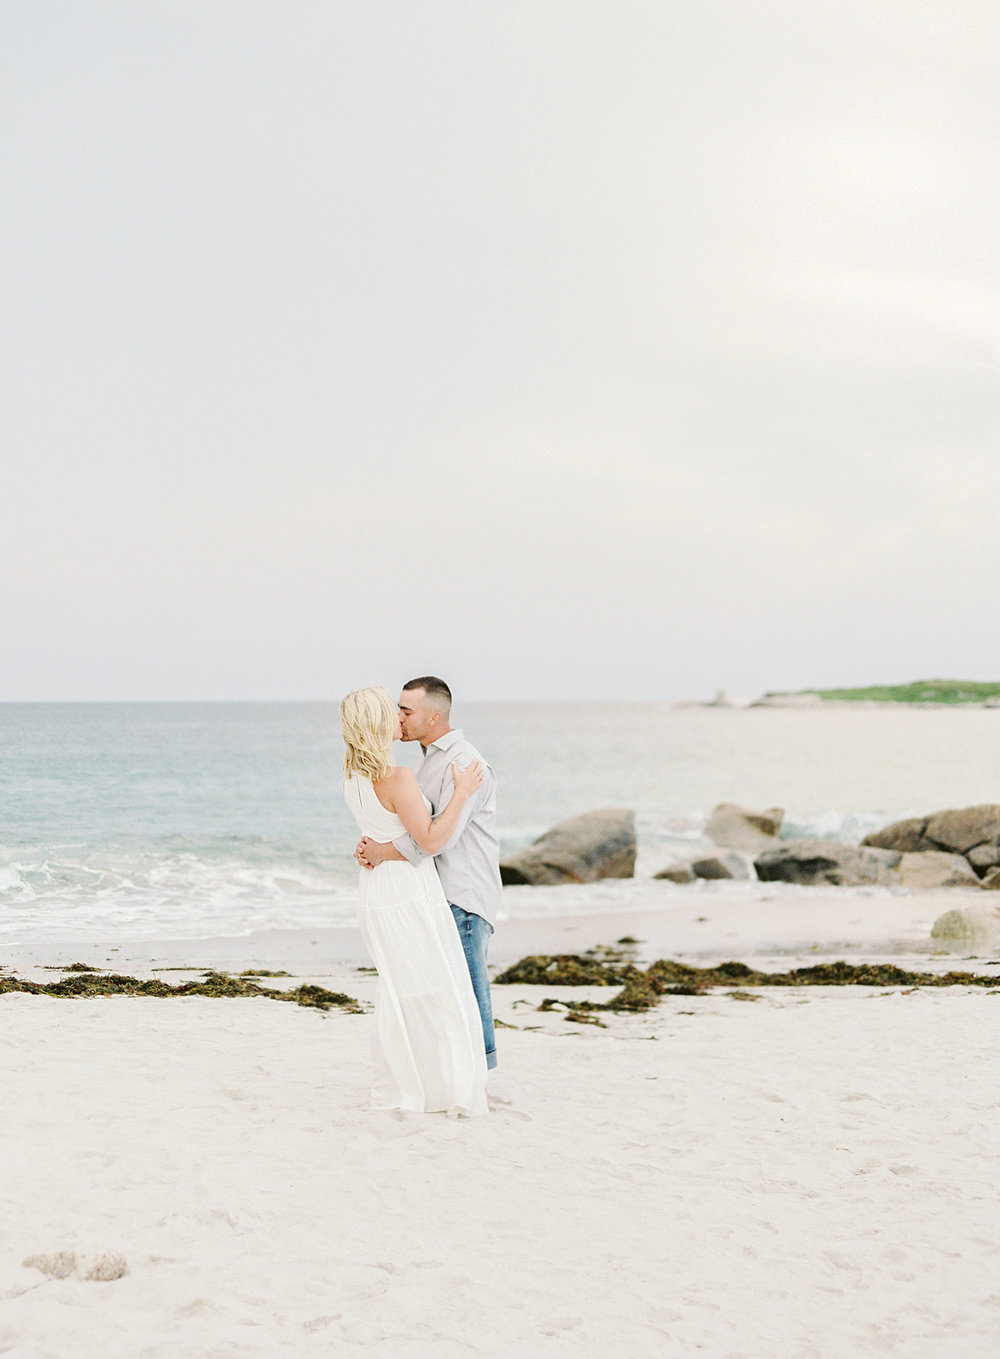 Halifax Wedding Photographer, Jacqueline Anne Photography, Crystal Crescent Beach, Nova Scotia Engagement